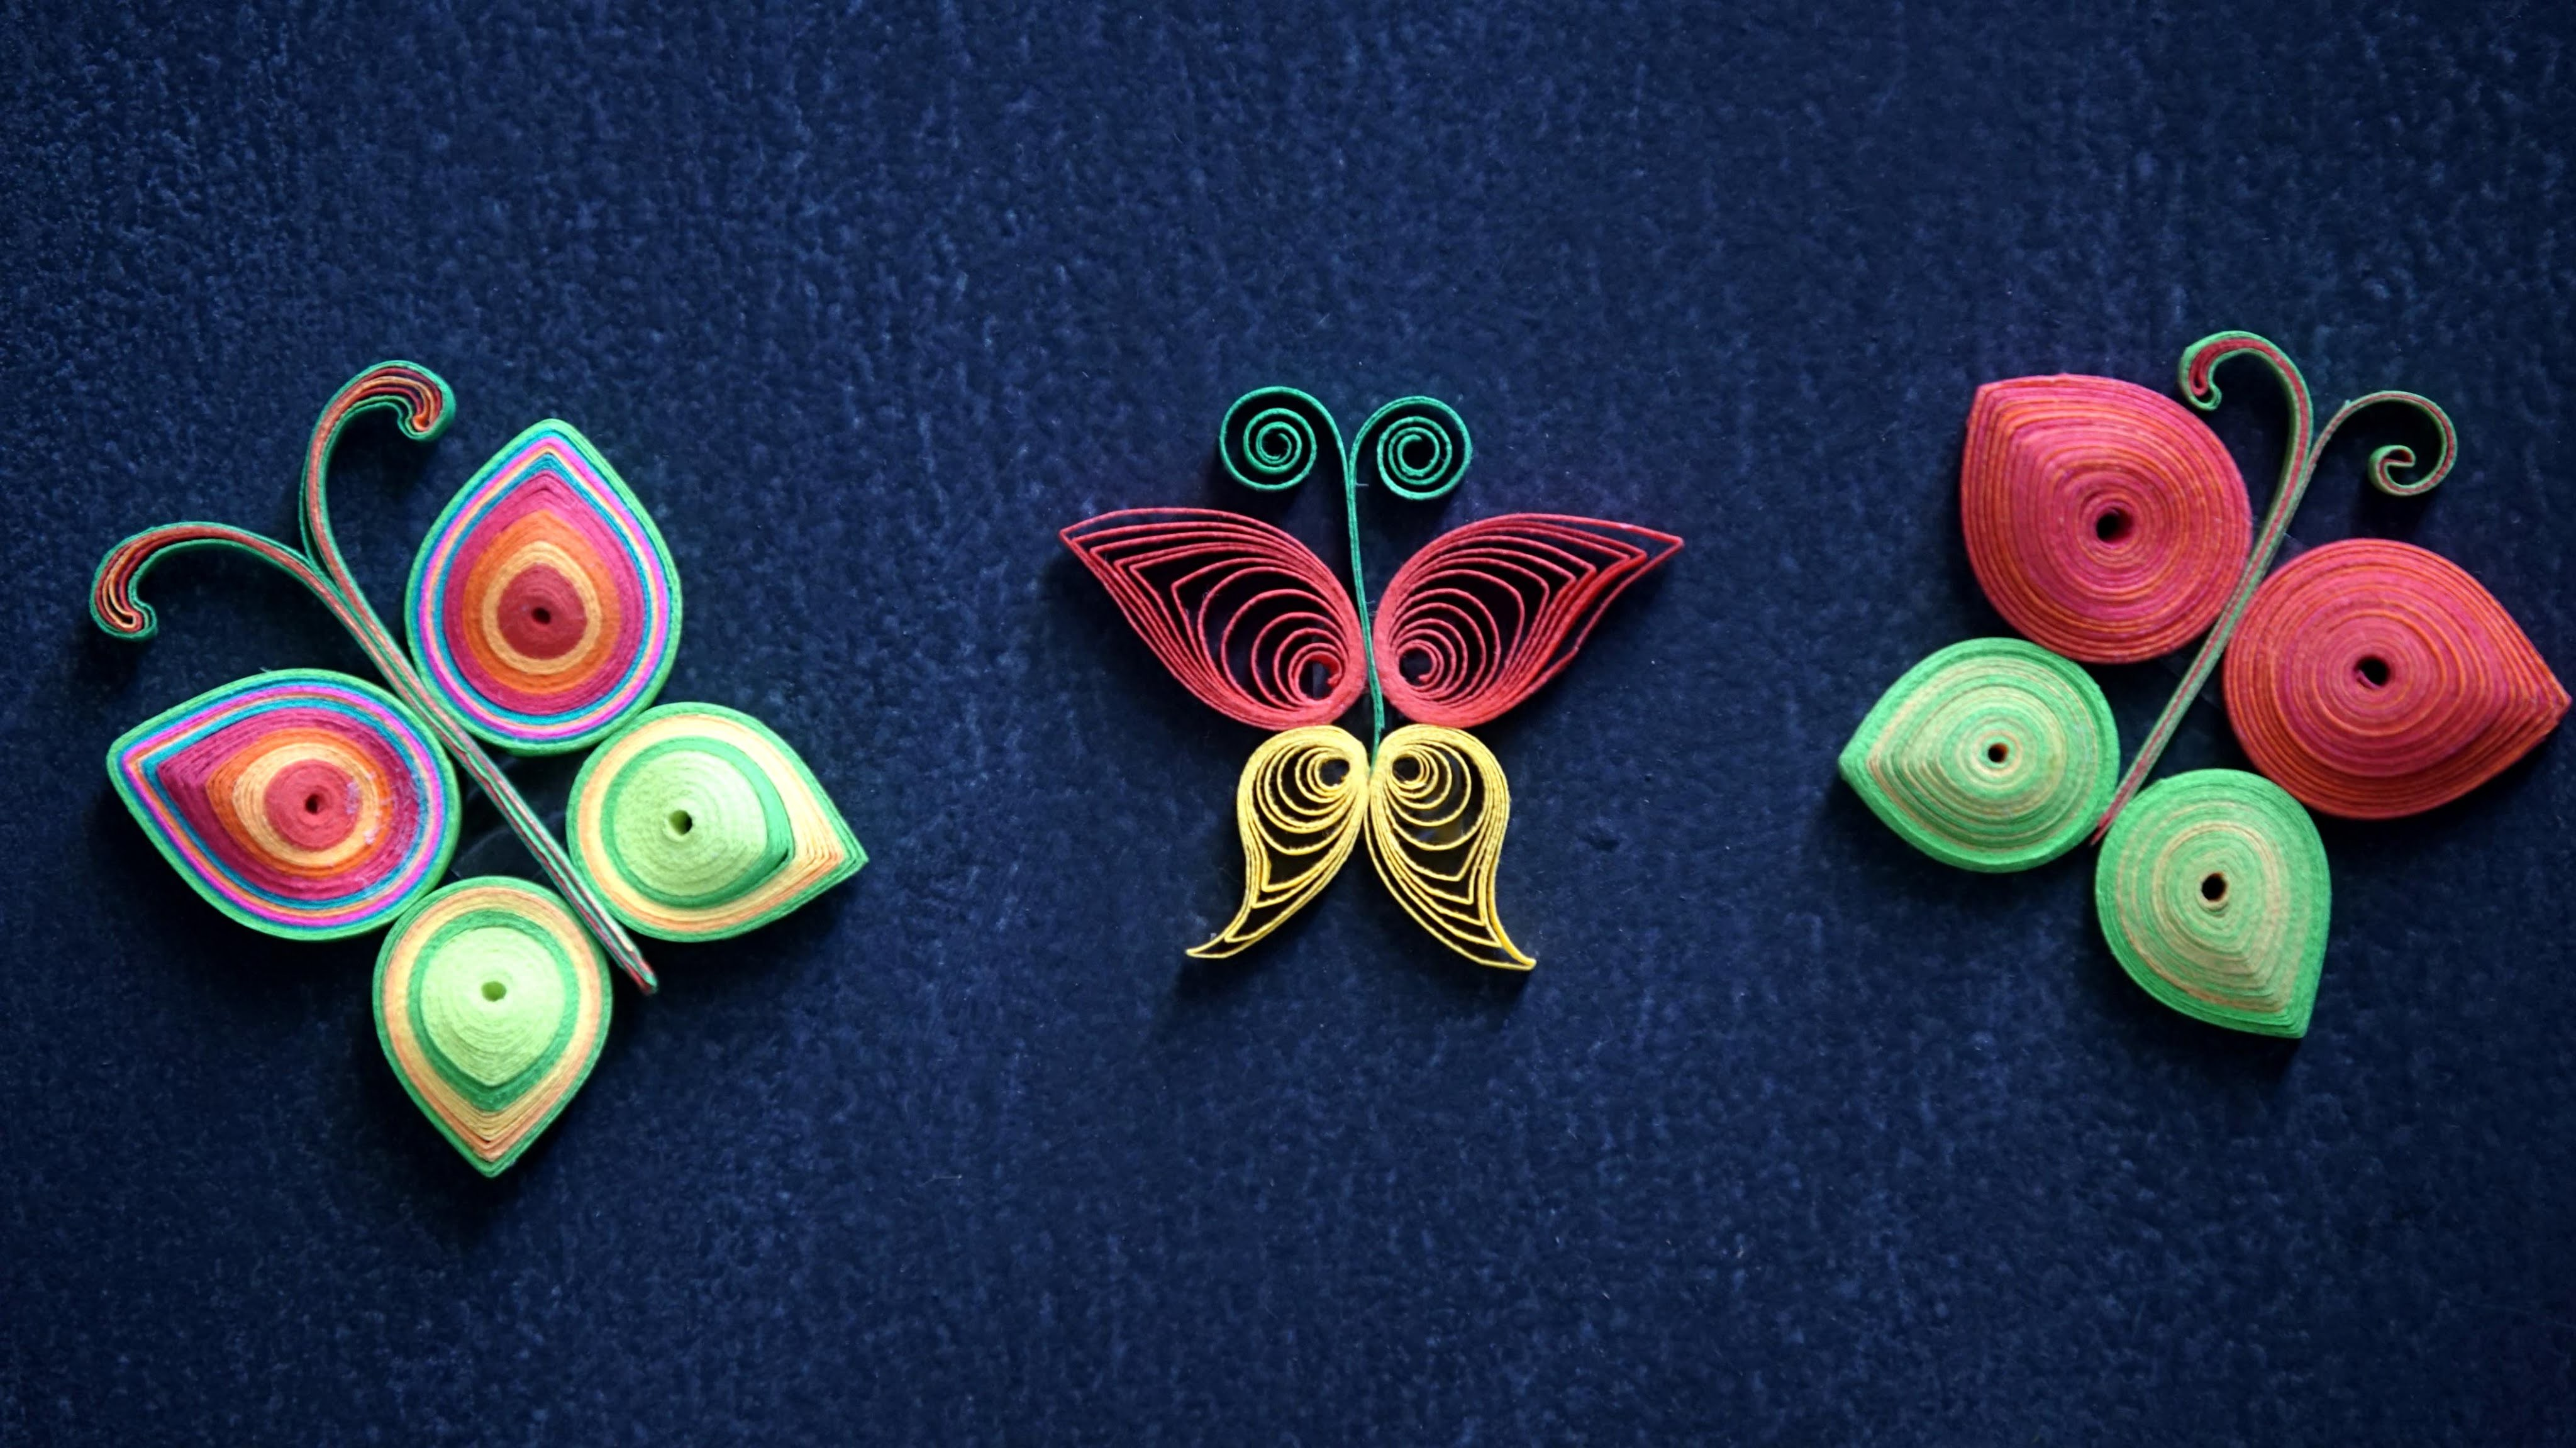 How To Make Beautiful Butterflies Using Paper Art Quilling - Decorate Your Room!